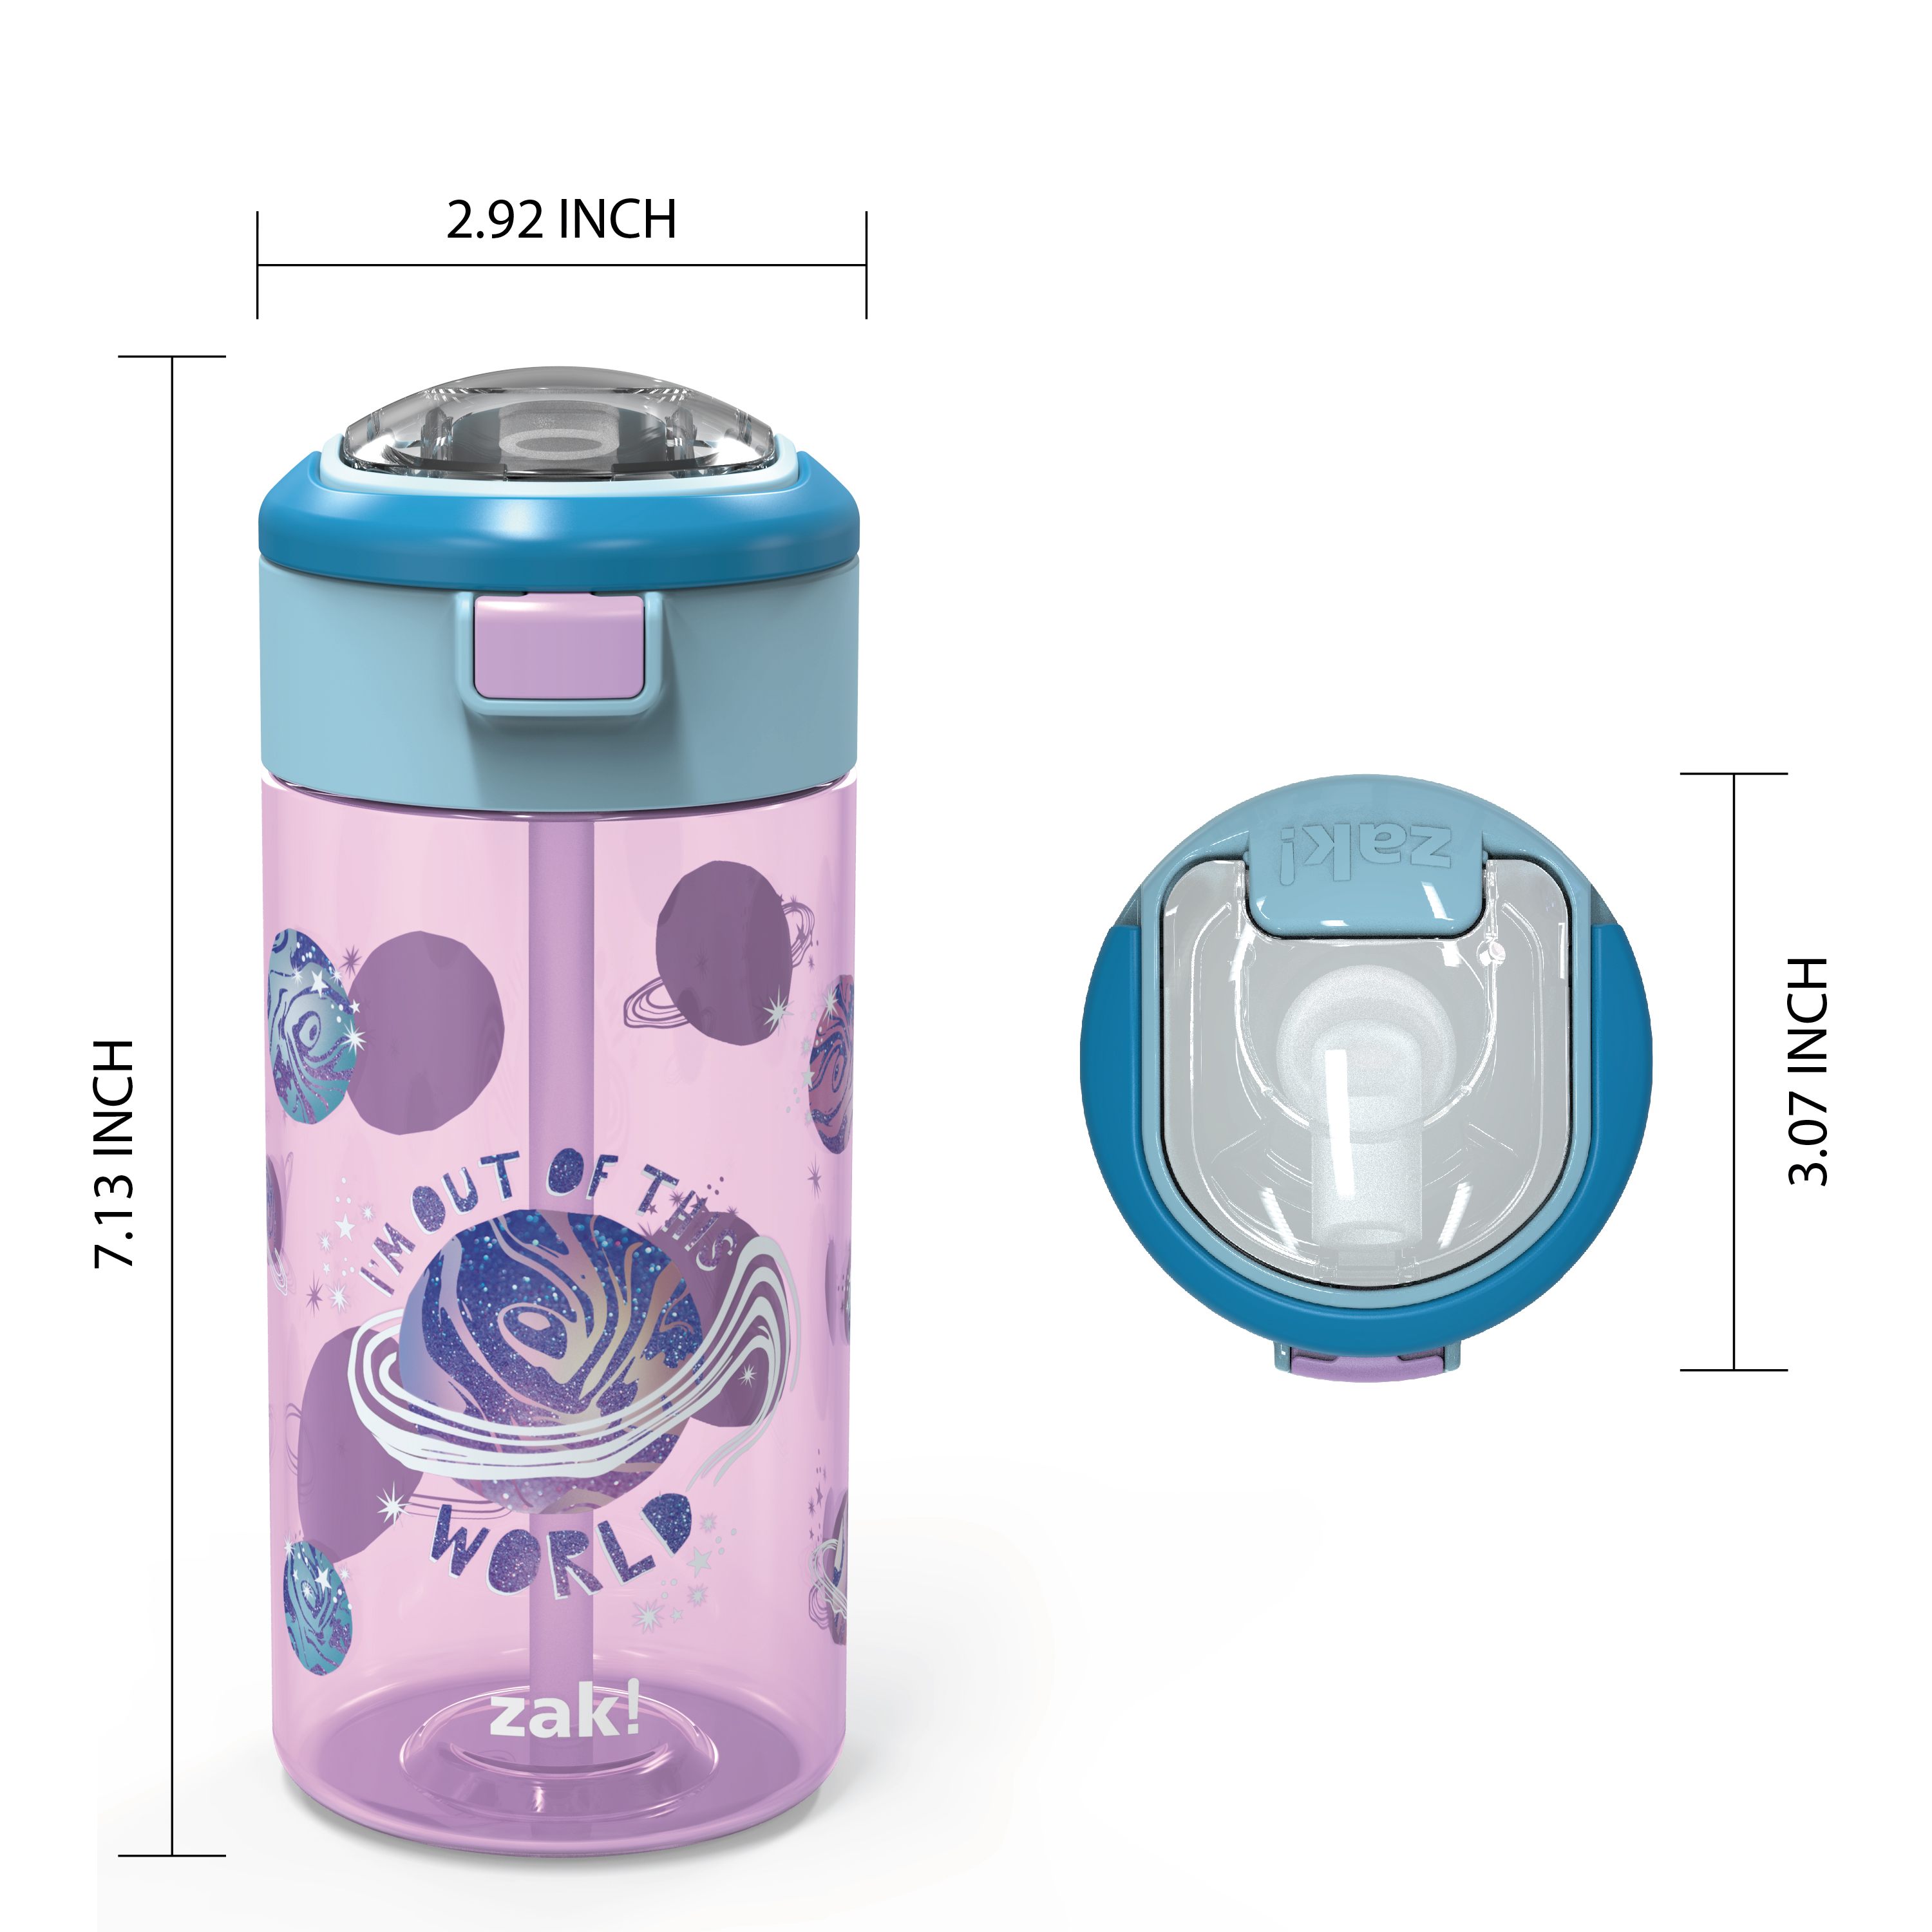 Genesis 18 ounce Water Bottles, Planet, 2-piece set slideshow image 8